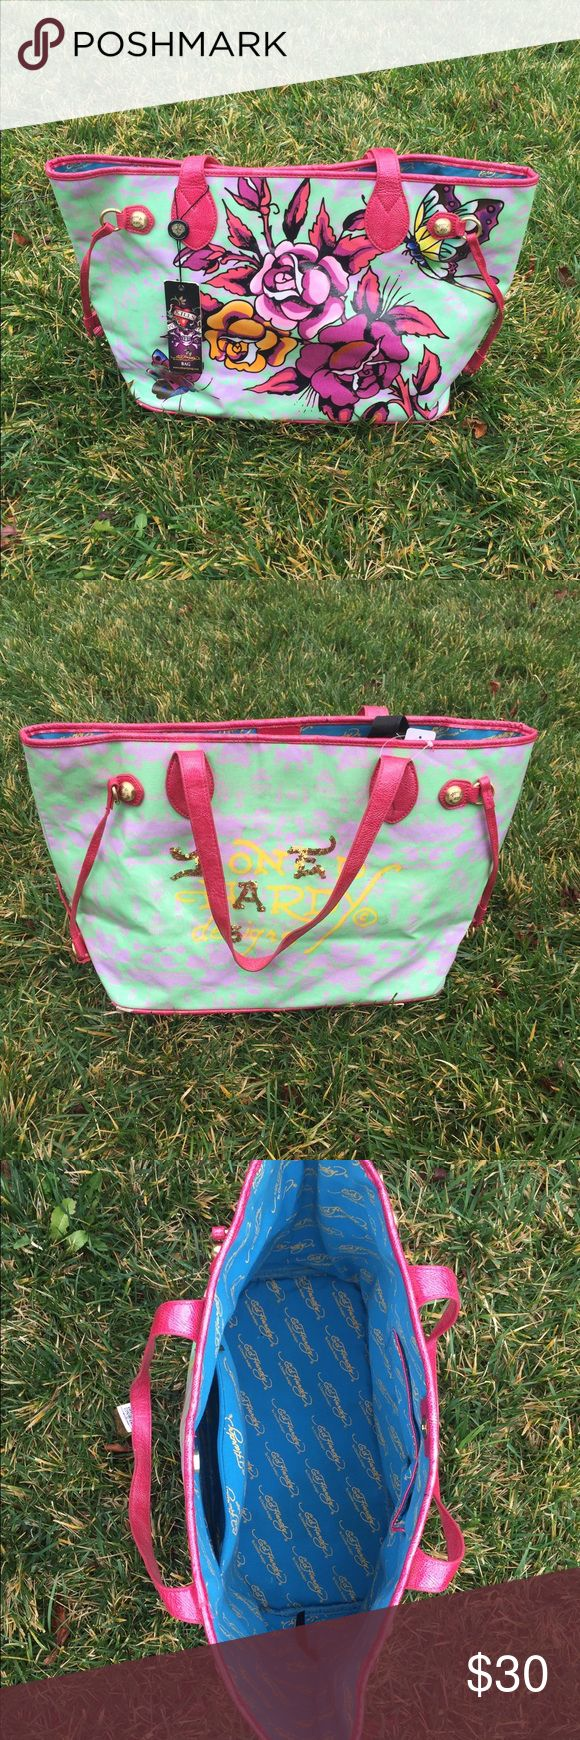 Selling this Ed Hardy by Christina Aguilera XL Tote Bag NWT on Poshmark! My username is: mygirls1618. #shopmycloset #poshmark #fashion #shopping #style #forsale #ed hardy  #Handbags